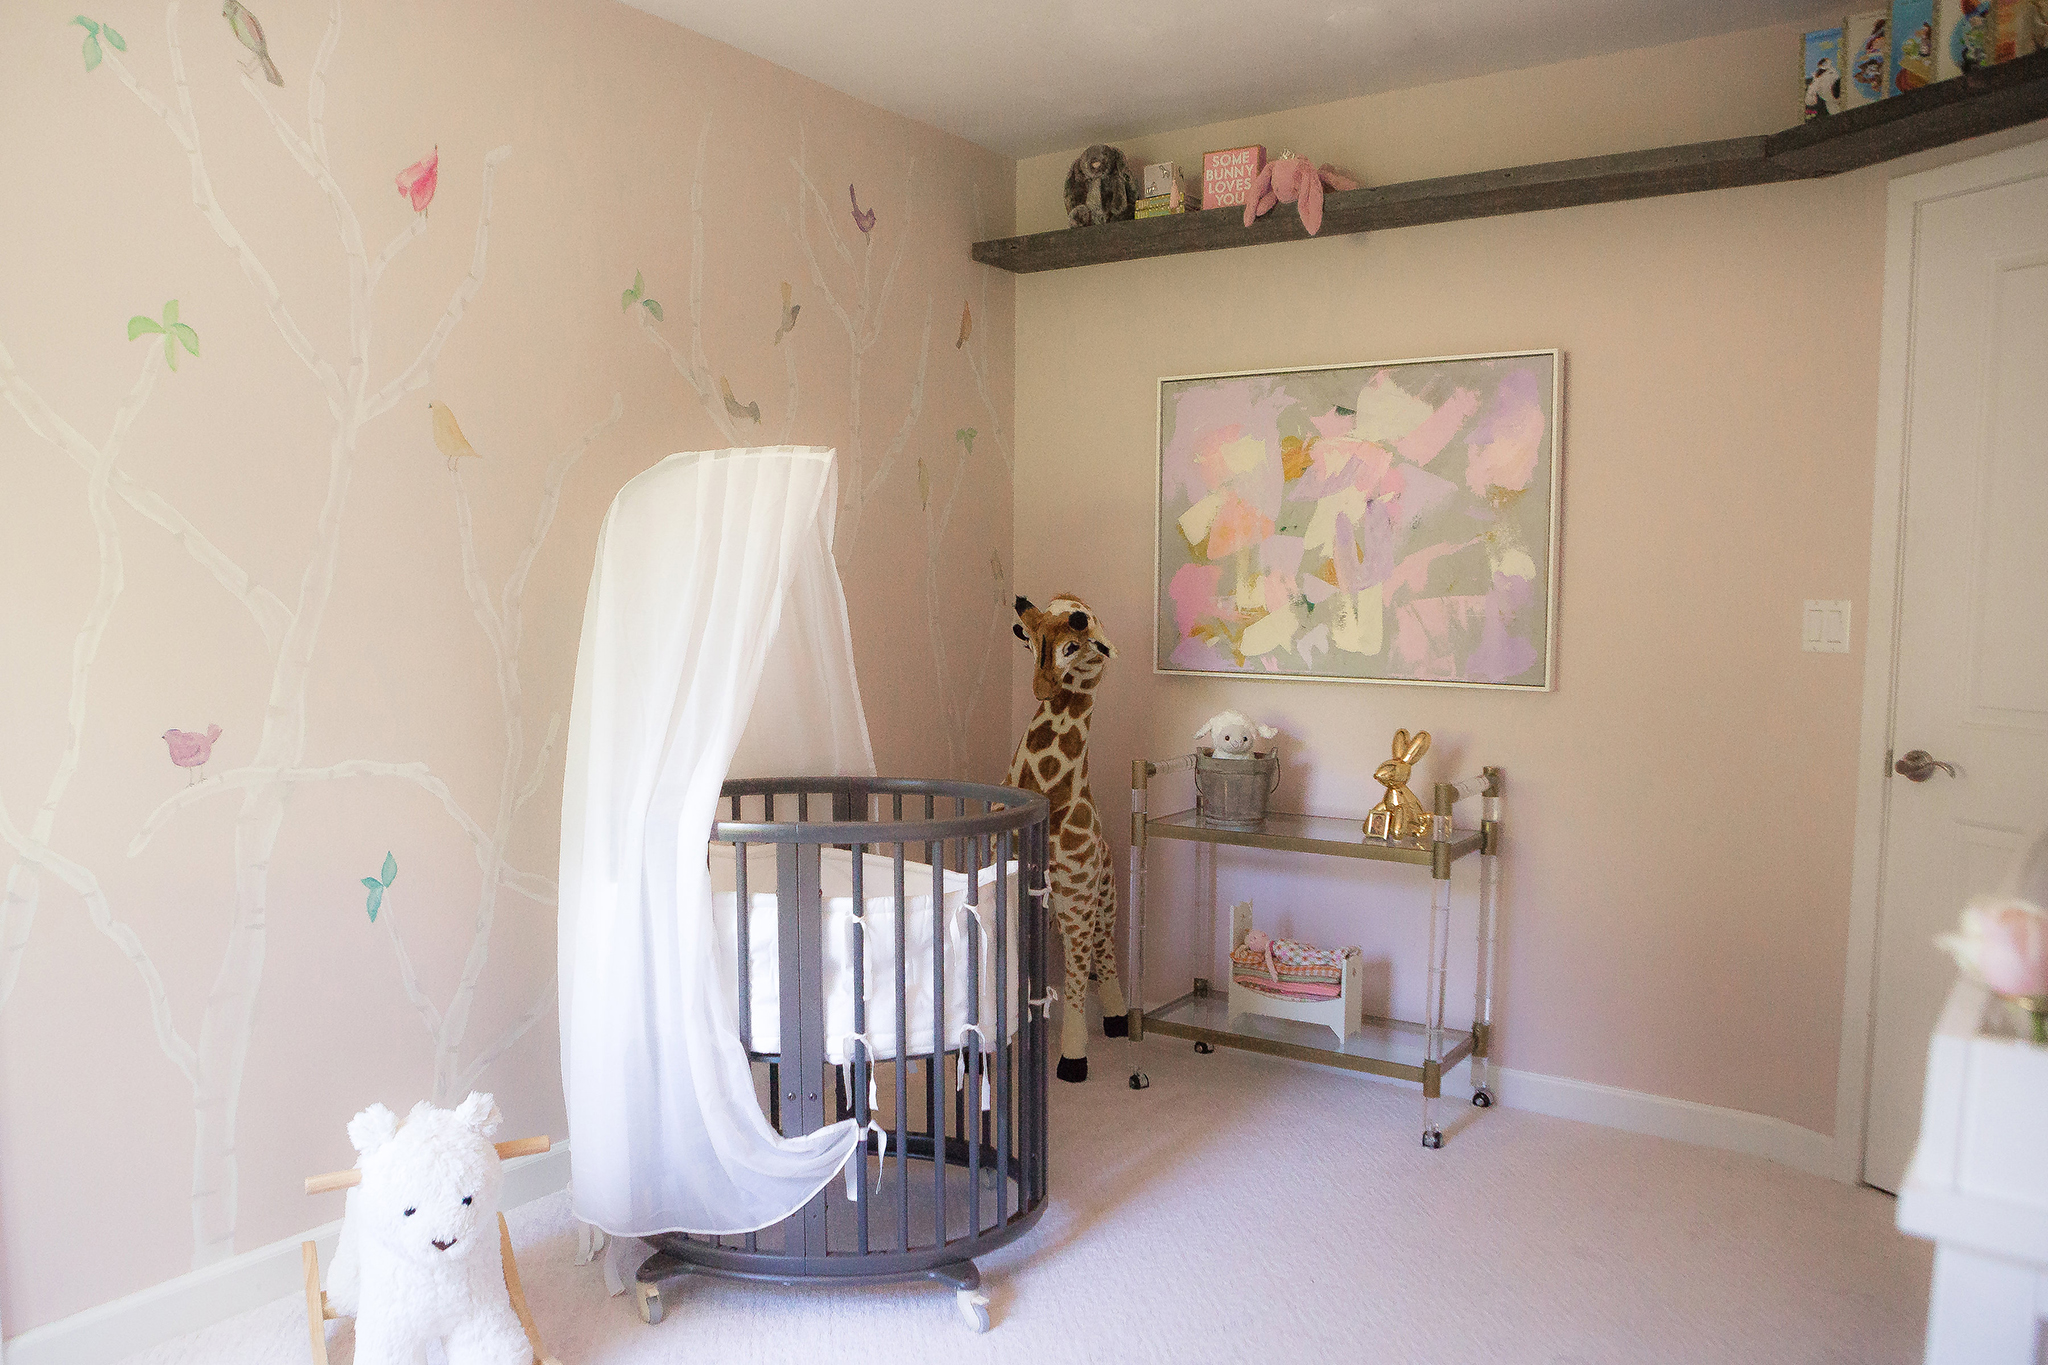 Jenni Pulos Nursery with Bird and Trees Wall Mural